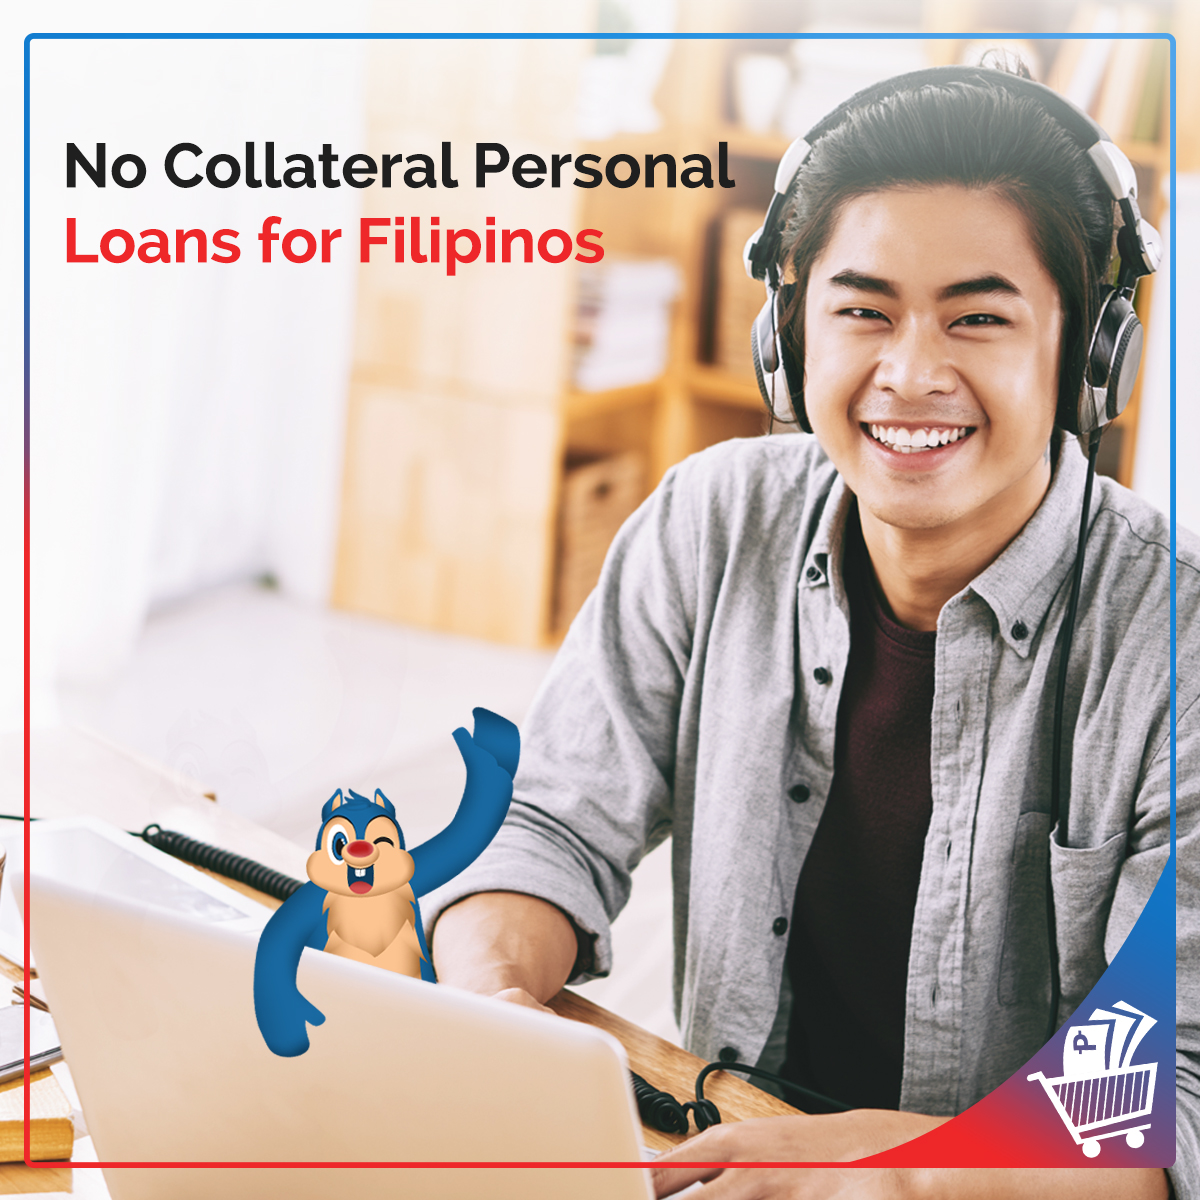 No Collateral Personal Loans For Your Cash Needs